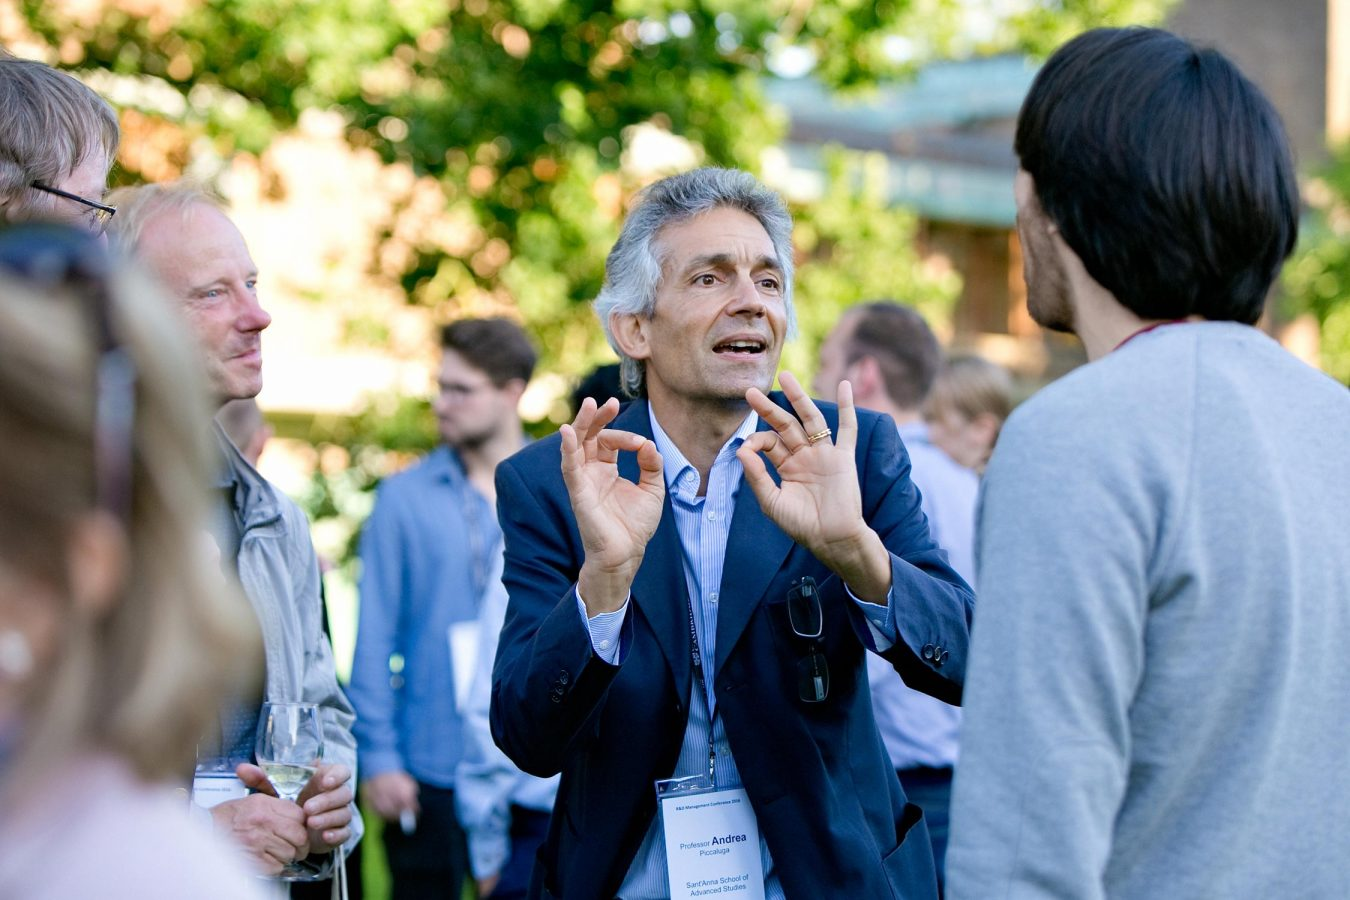 university-of-cambridge-conference-gesture